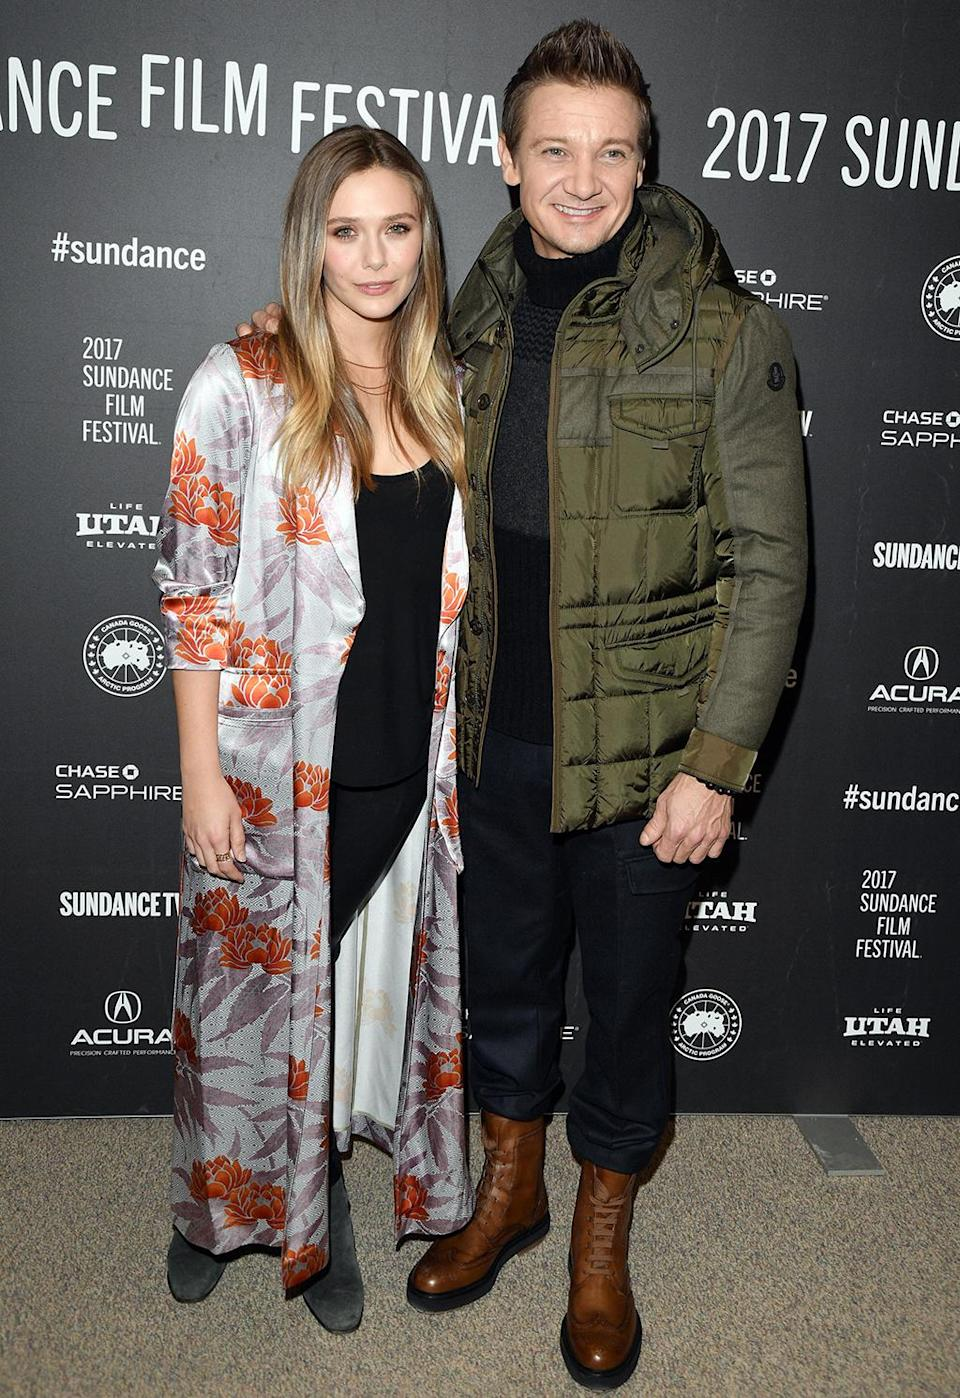 <p>The Avengers reunite for the premiere of 'Wind River' on Jan. 21. (Photo: George Pimentel/Getty Images) </p>